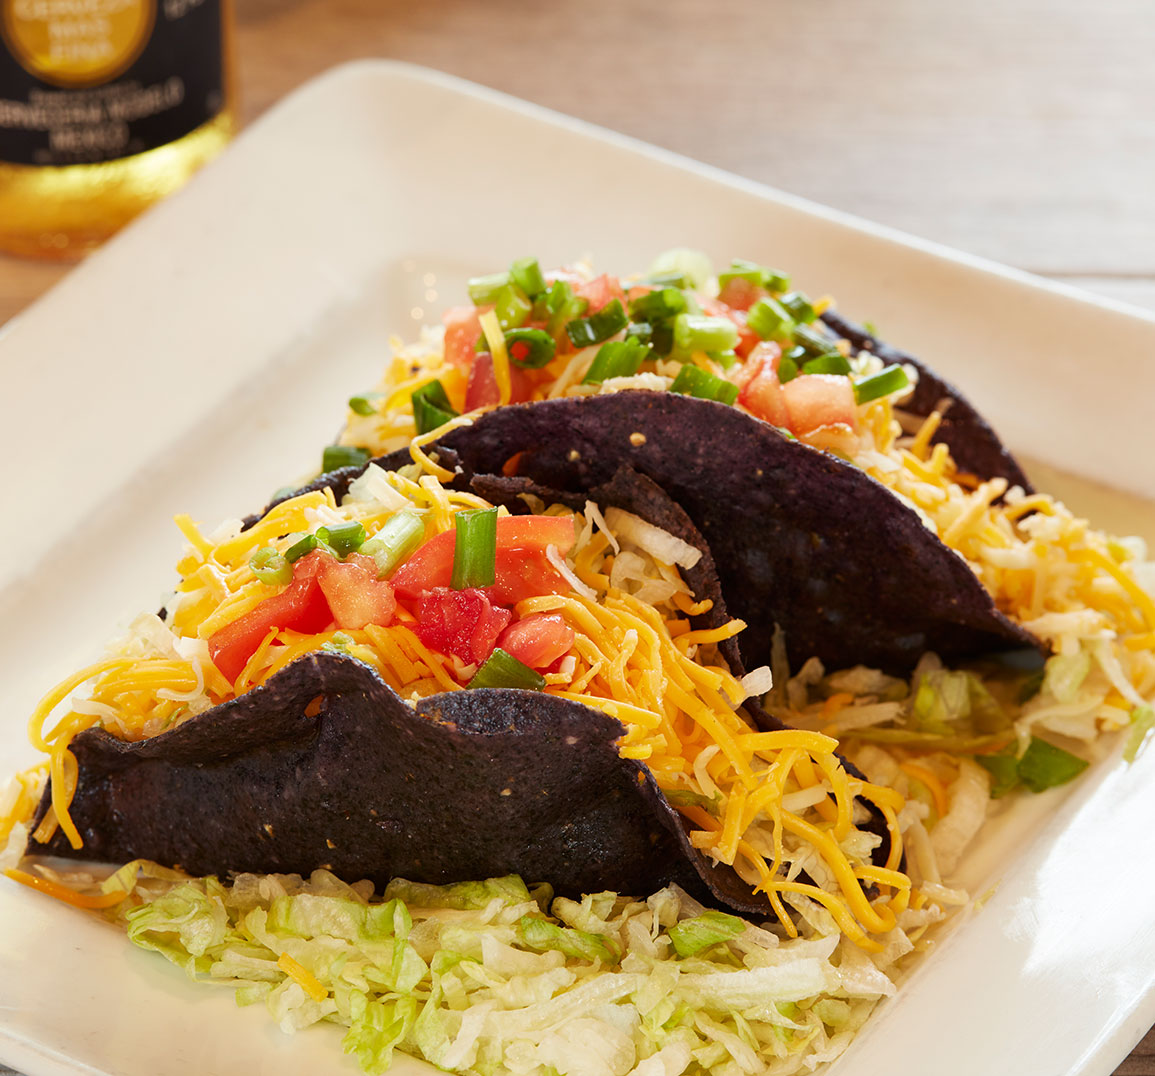 Blue corn taco with shredded cheese, diced tomatoes, and jalapenos